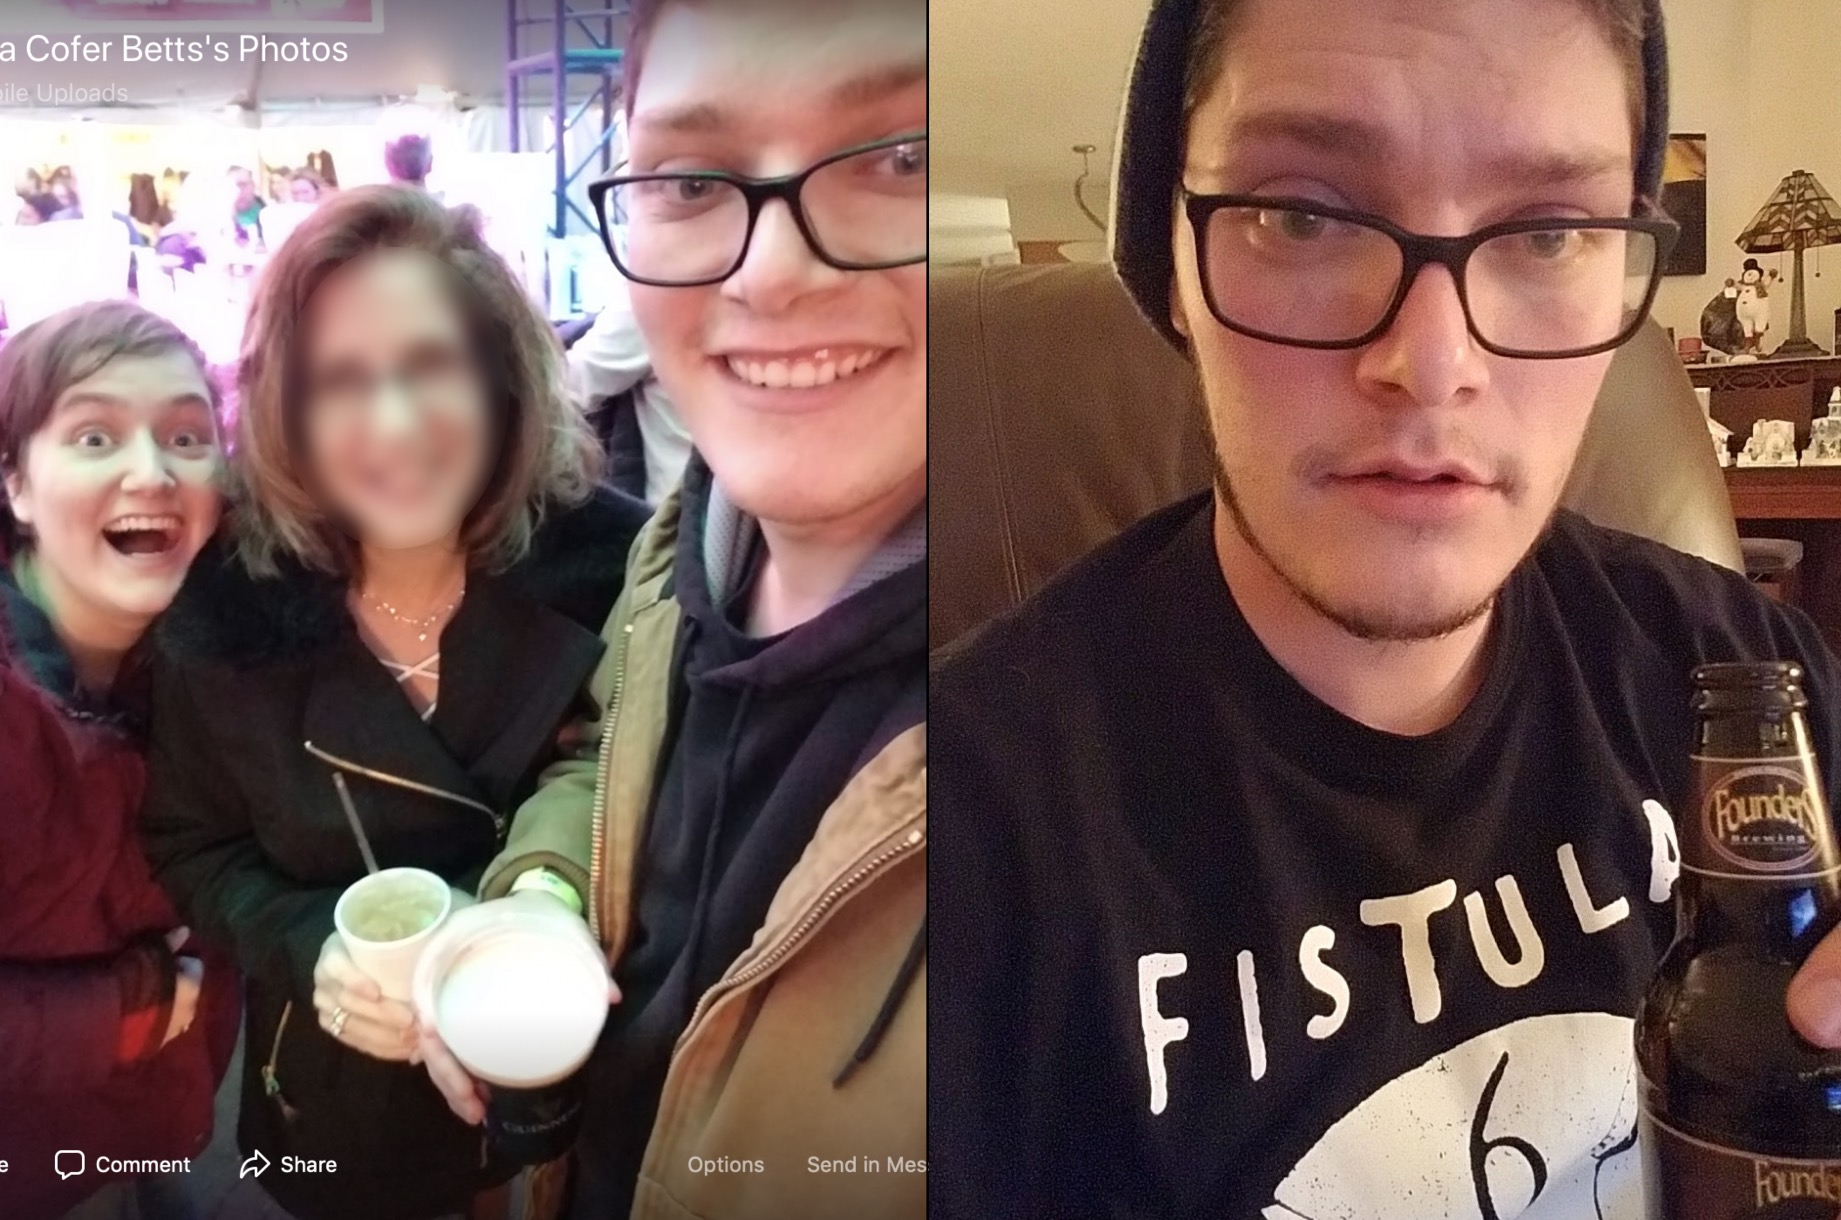 The photo on the left, taken from Betts's mother's Facebook page, matches the one on the right, taken from the Twitter account. (Facebook Screenshot Moria Cofer Betts/Twitter Screenshot @iamthespookster)